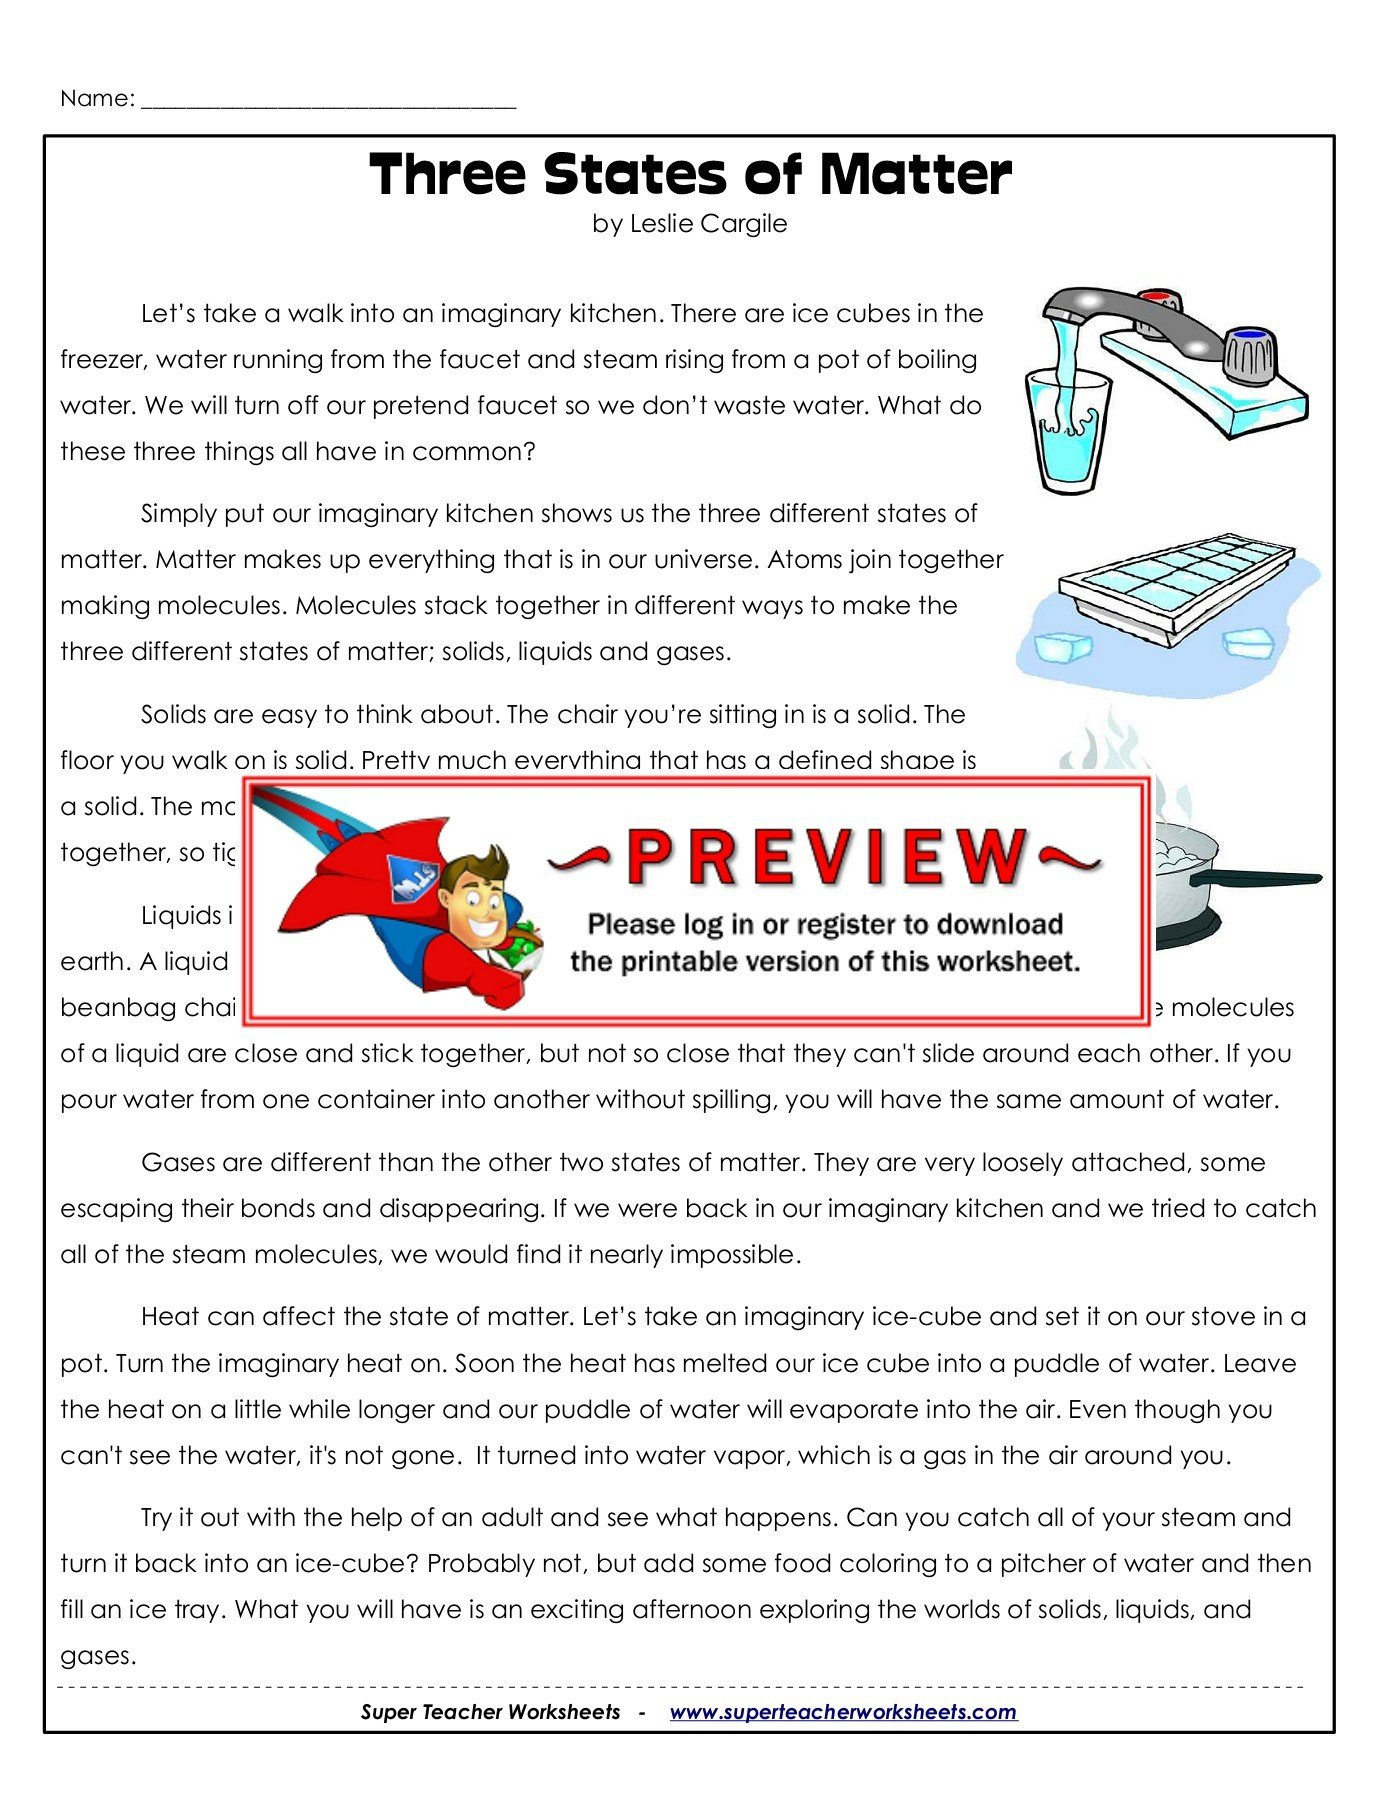 Superteacher Worksheets Login Name Three States Of Matter Super Teacher Worksheets